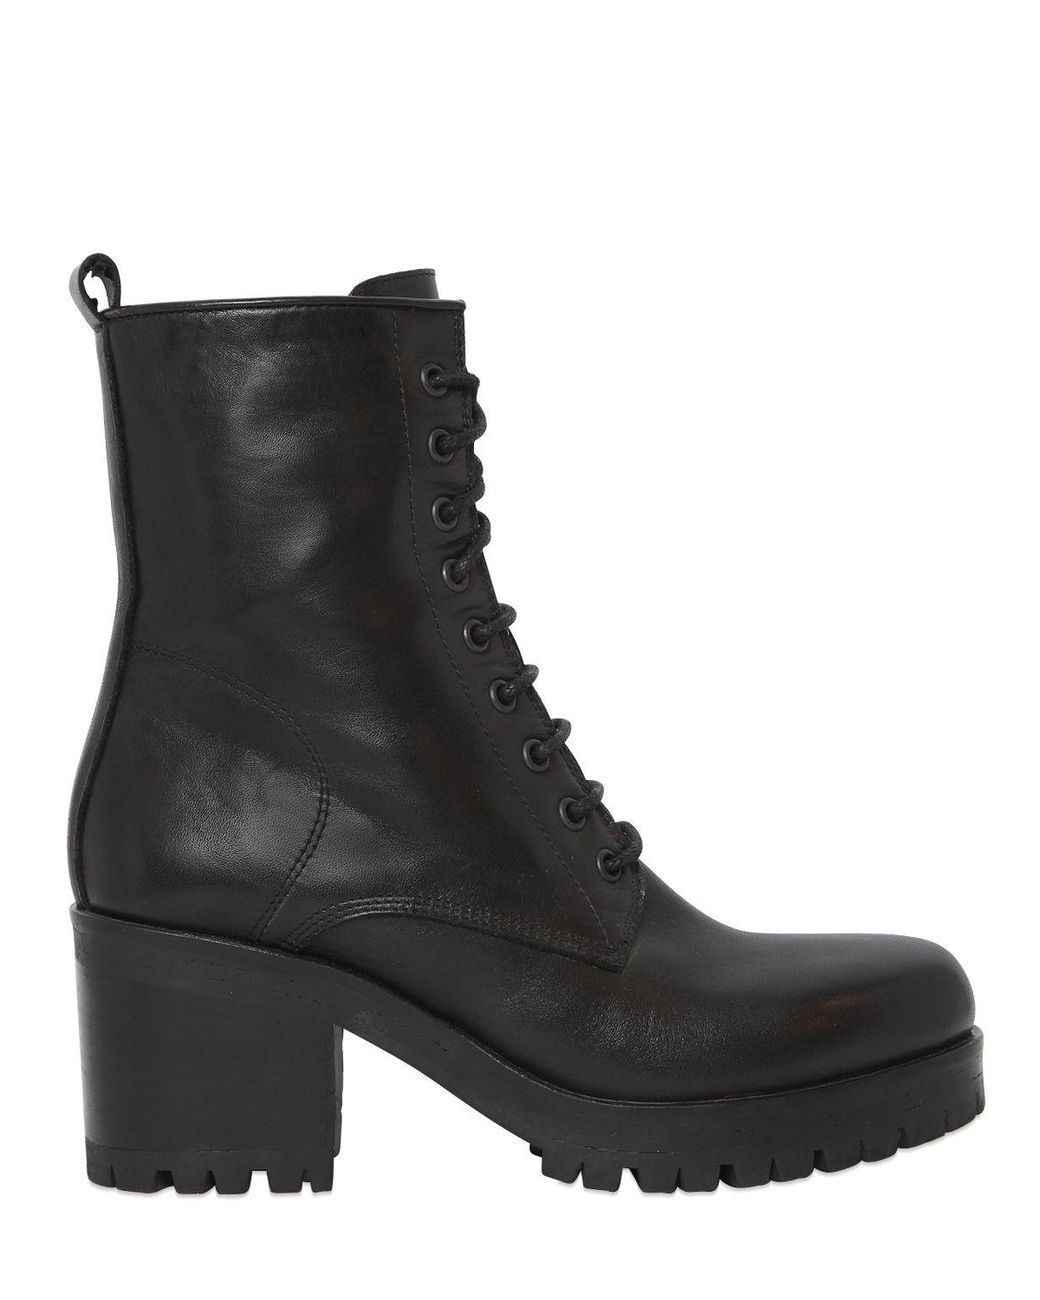 Strategia 50MM LEATHER LACE-UP BOOTS nWqEdN